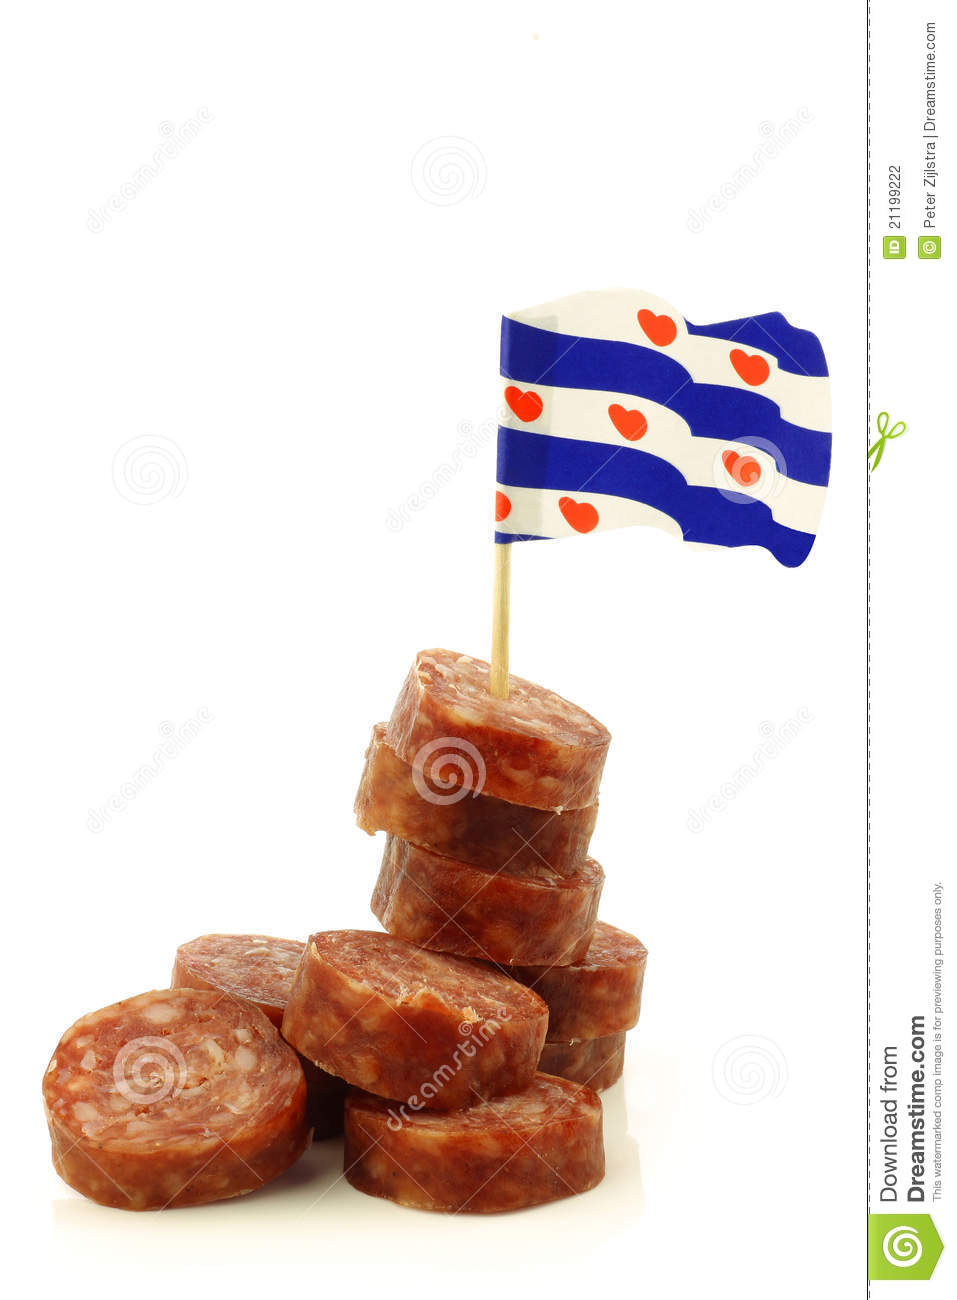 Traditional frisian dried sausage pieces